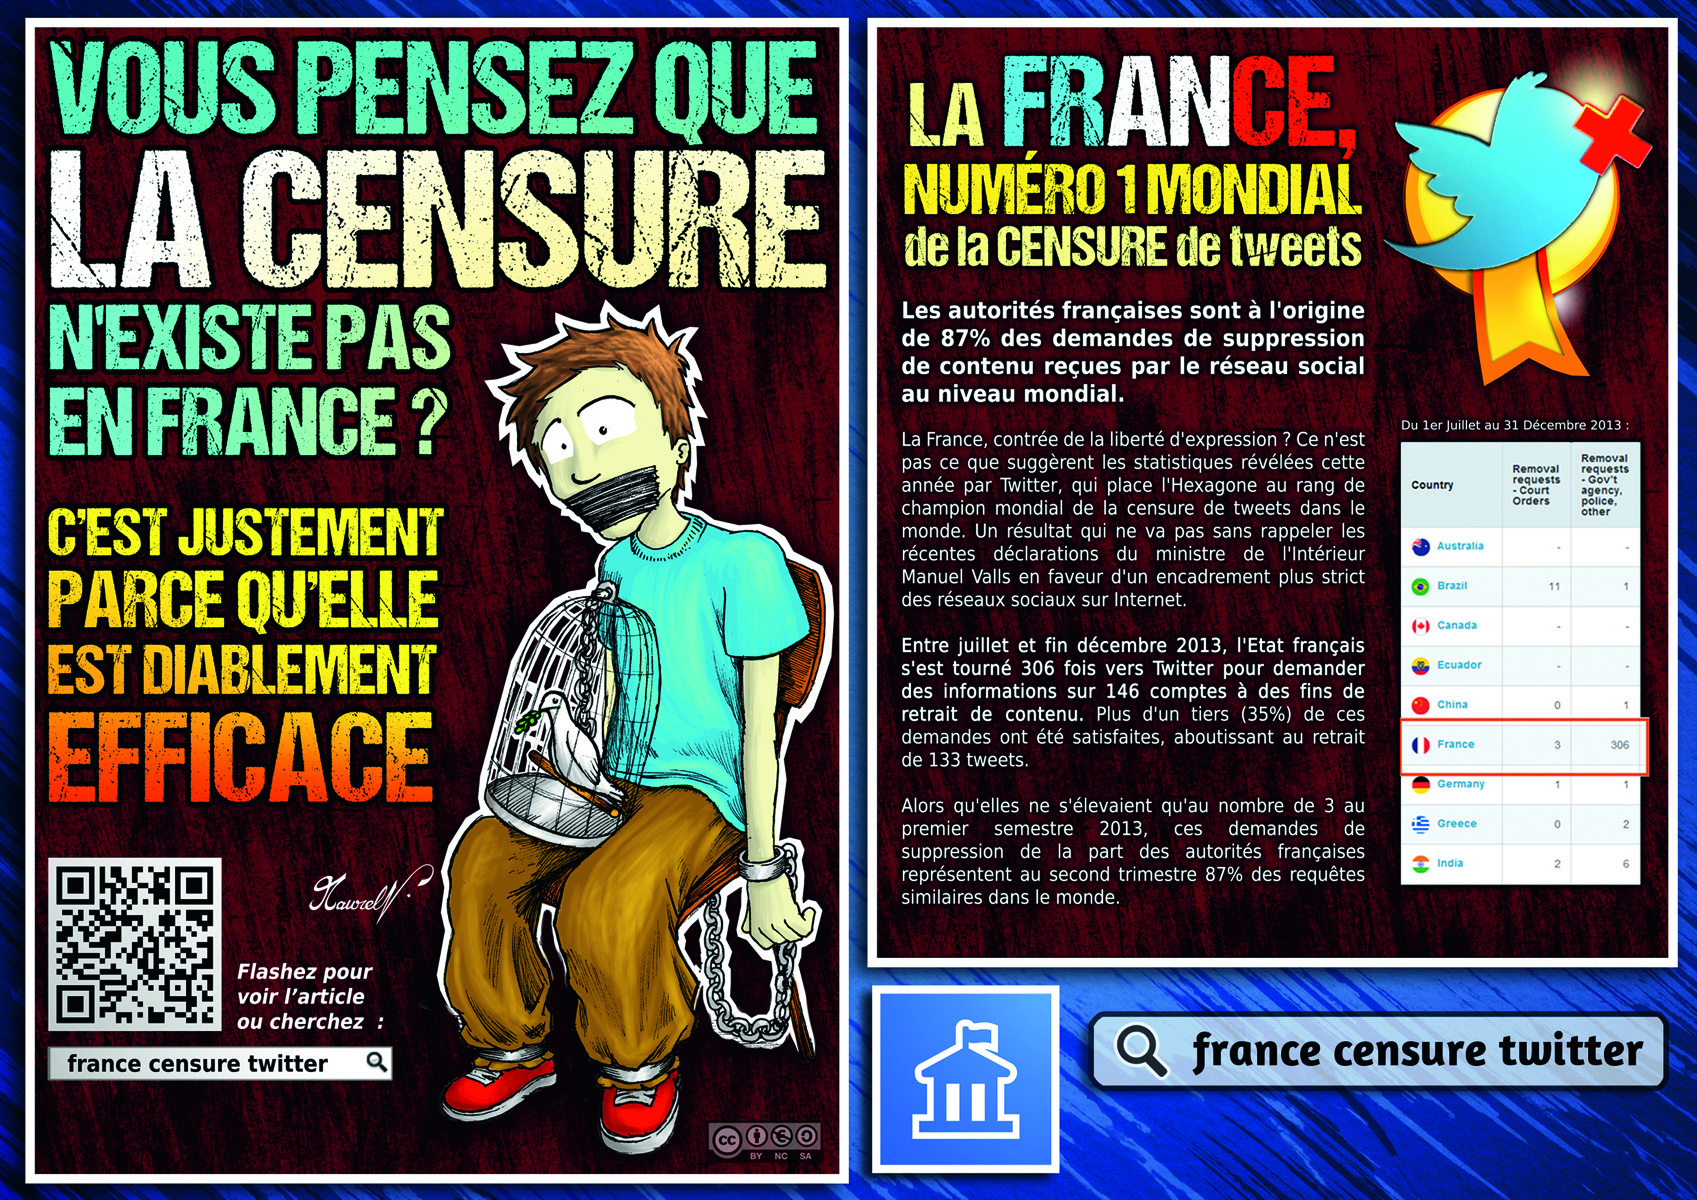 http://www.informaction.info/sites/default/files/images/art5_-_france_censure_twitter.jpg